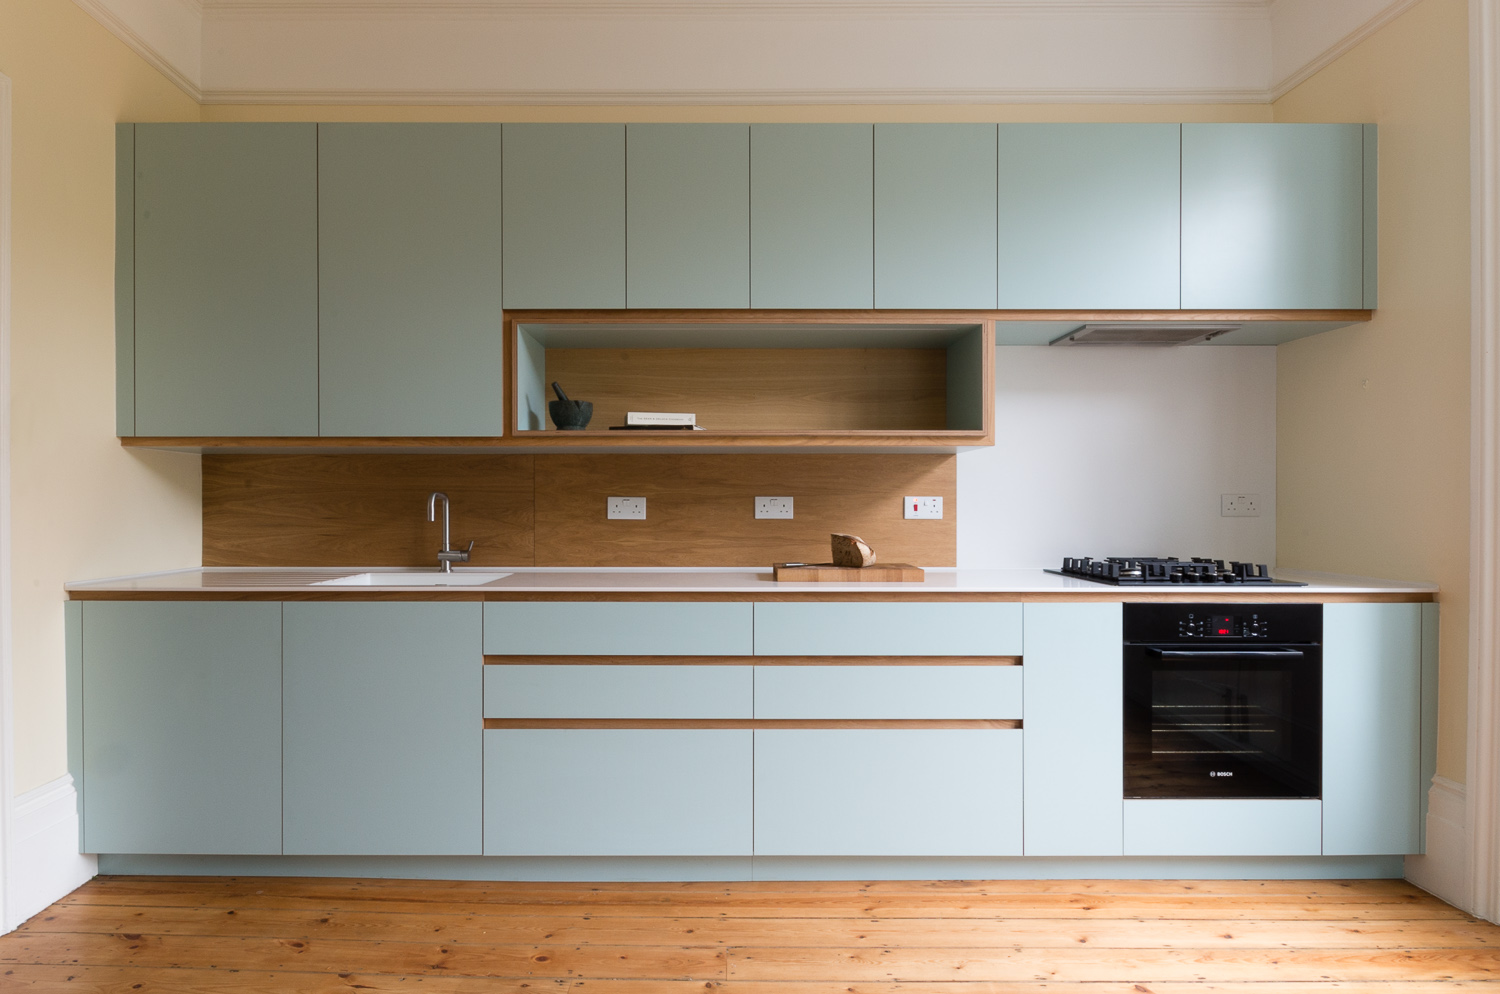 Copy of Bespoke kitchen and cabinets in custom laminated birch plywood and solid oak in Crouch End.